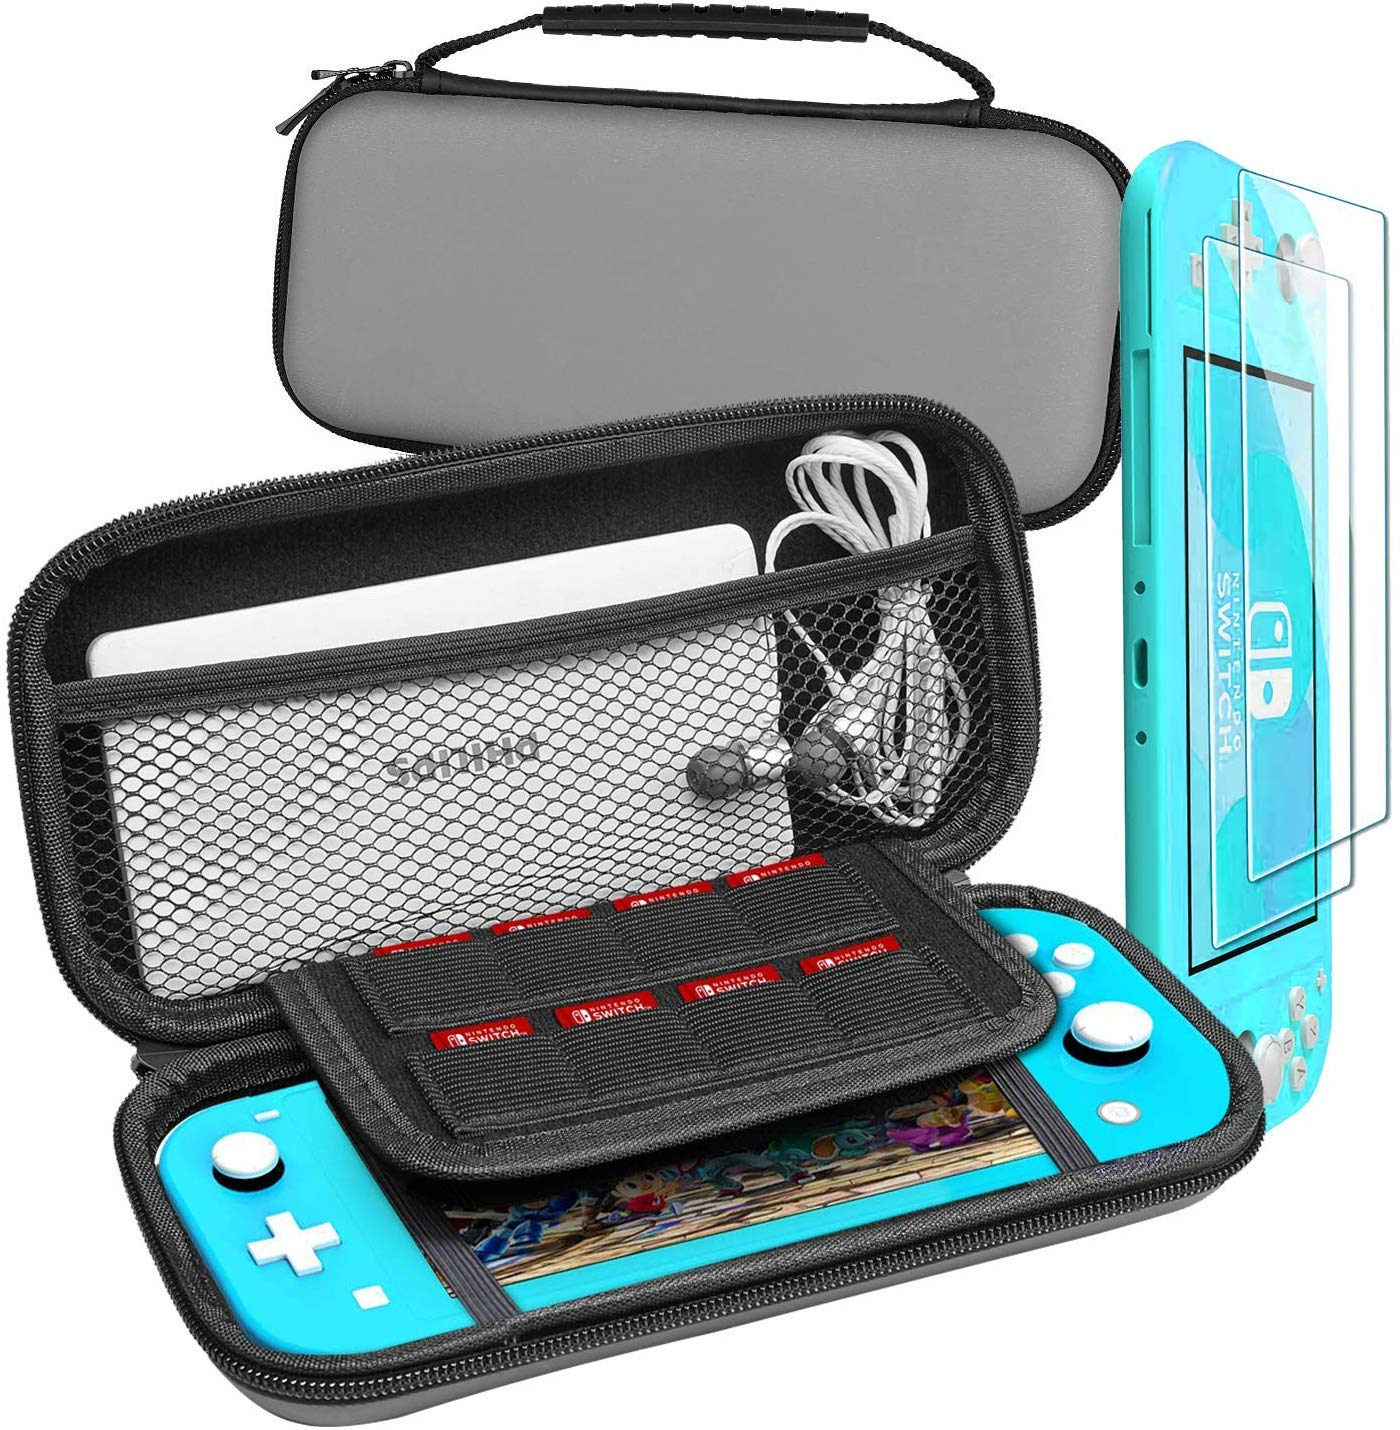 Halnziye Carrying Case for Nintendo Switch Lite - Portable Hard Shell Travel Case with 2-Pack Tempered Glass Screen Protector for Nintendo Switch Lite & Accessories (Gray)